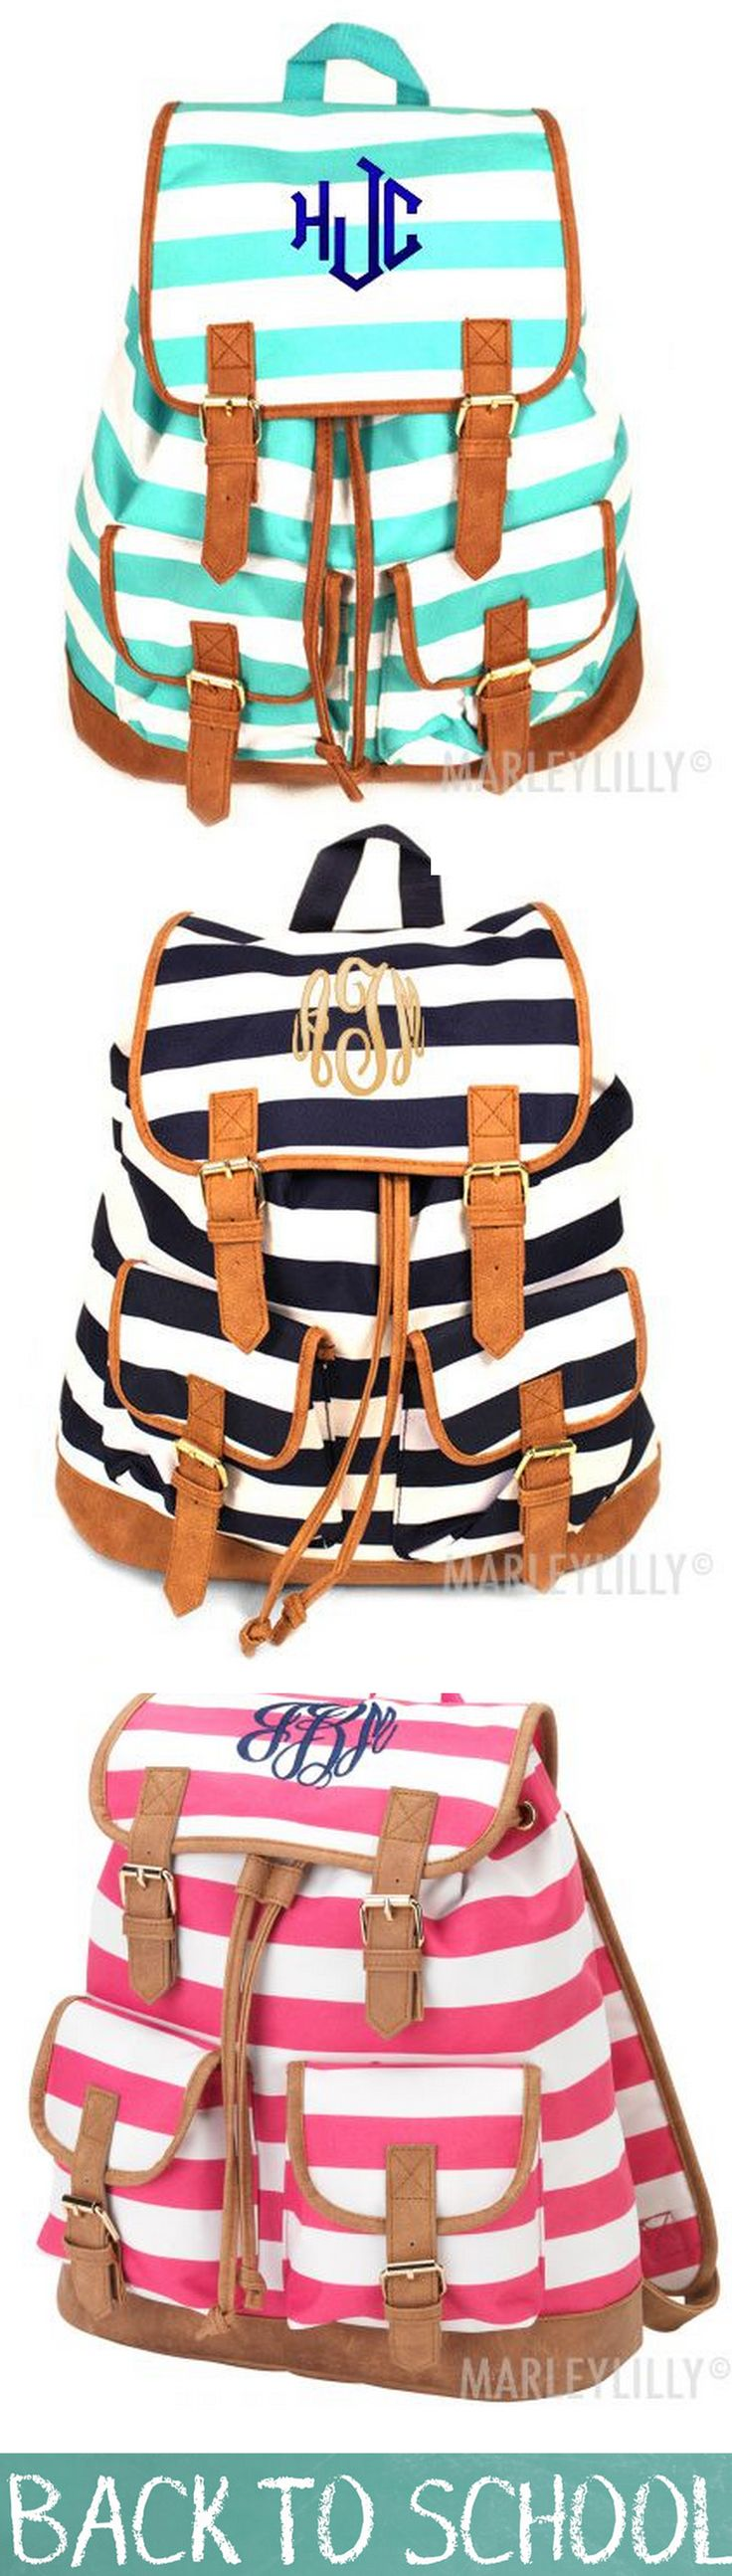 Looking for the perfect Back to School backpack? Want to preview your monogram before you buy? You can do it here! Visit www.Marleylilly.com and customize your backpack today!